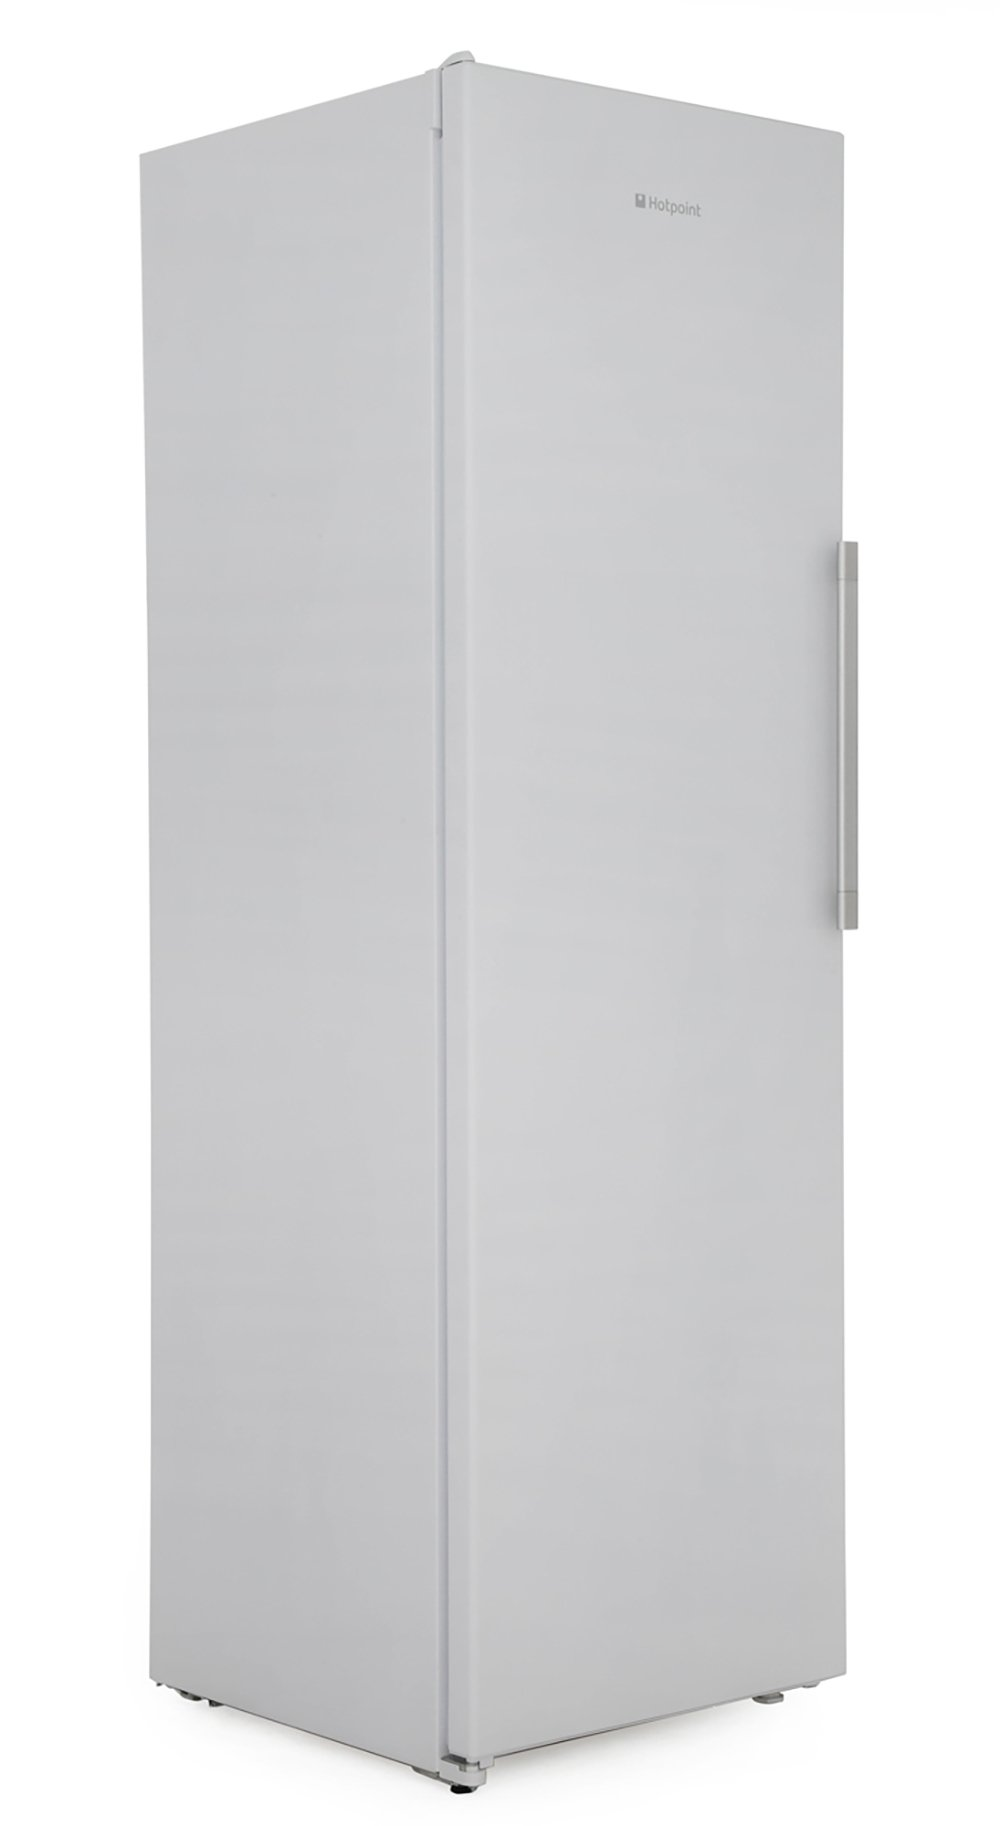 Hotpoint UH8 F1C W UK.1 Frost Free Tall Freezer